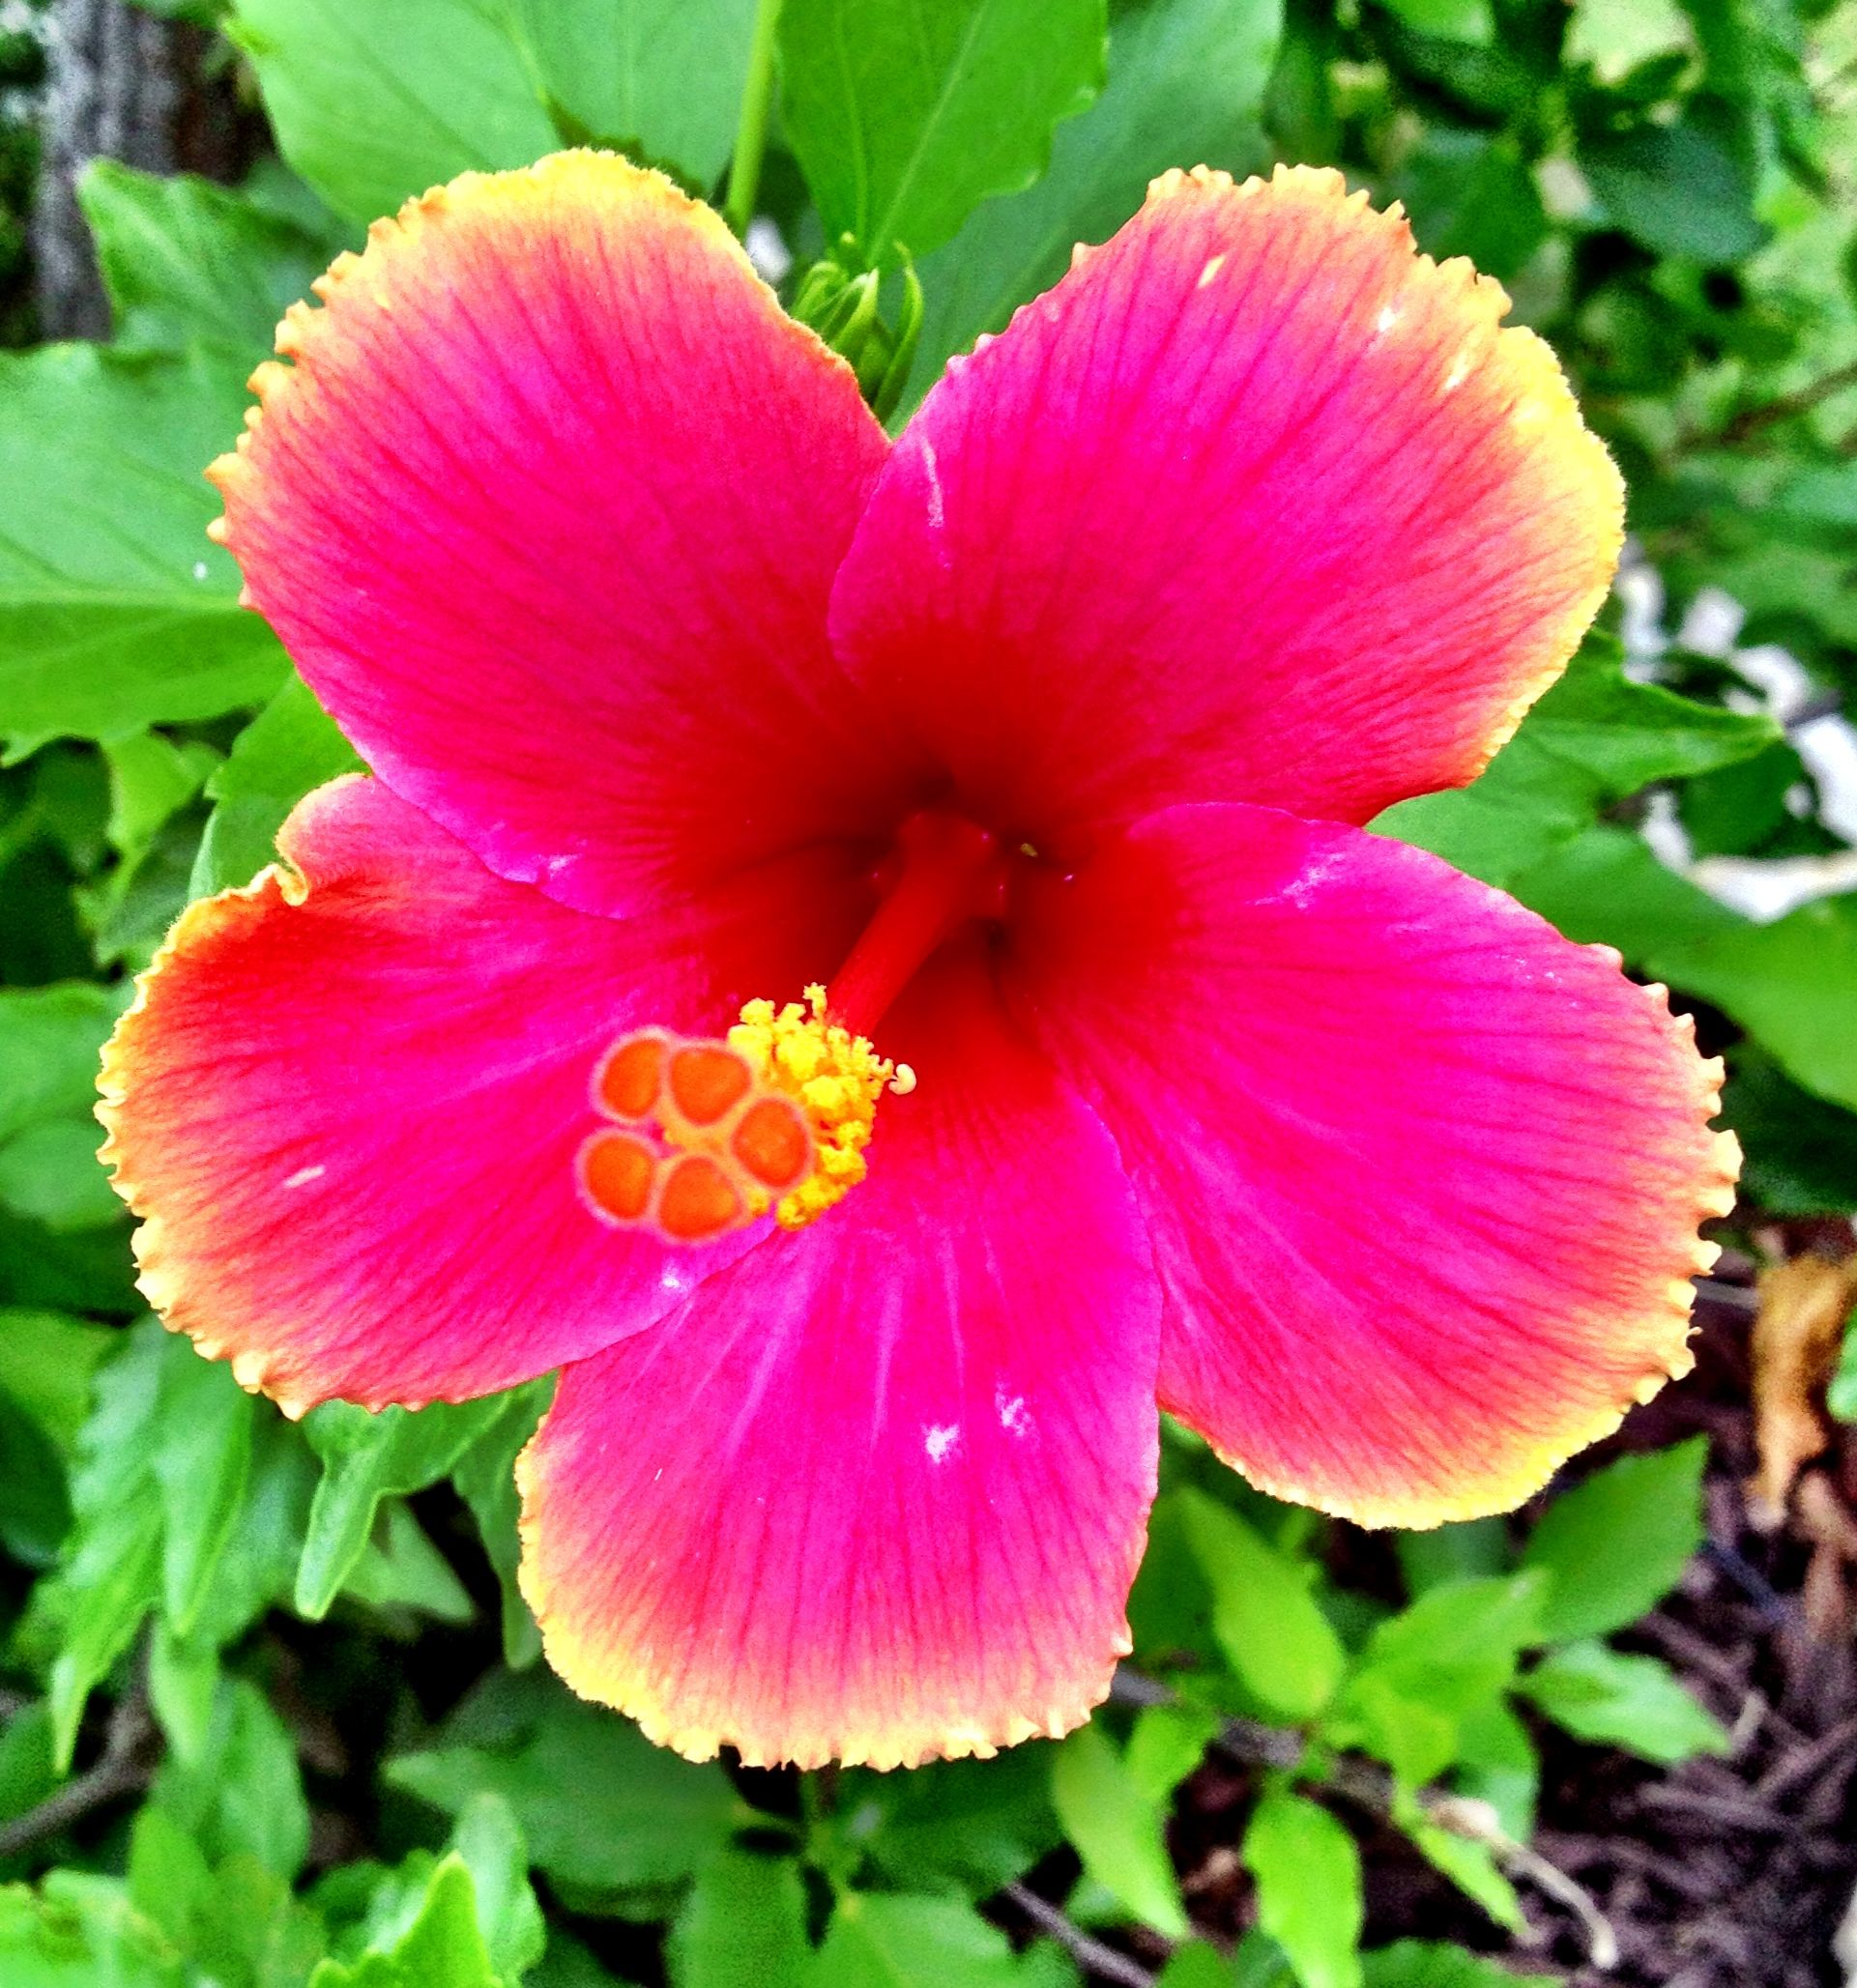 Vibrant tropical hibiscus flower tattoo ideas pinterest vibrant tropical hibiscus flower izmirmasajfo Gallery